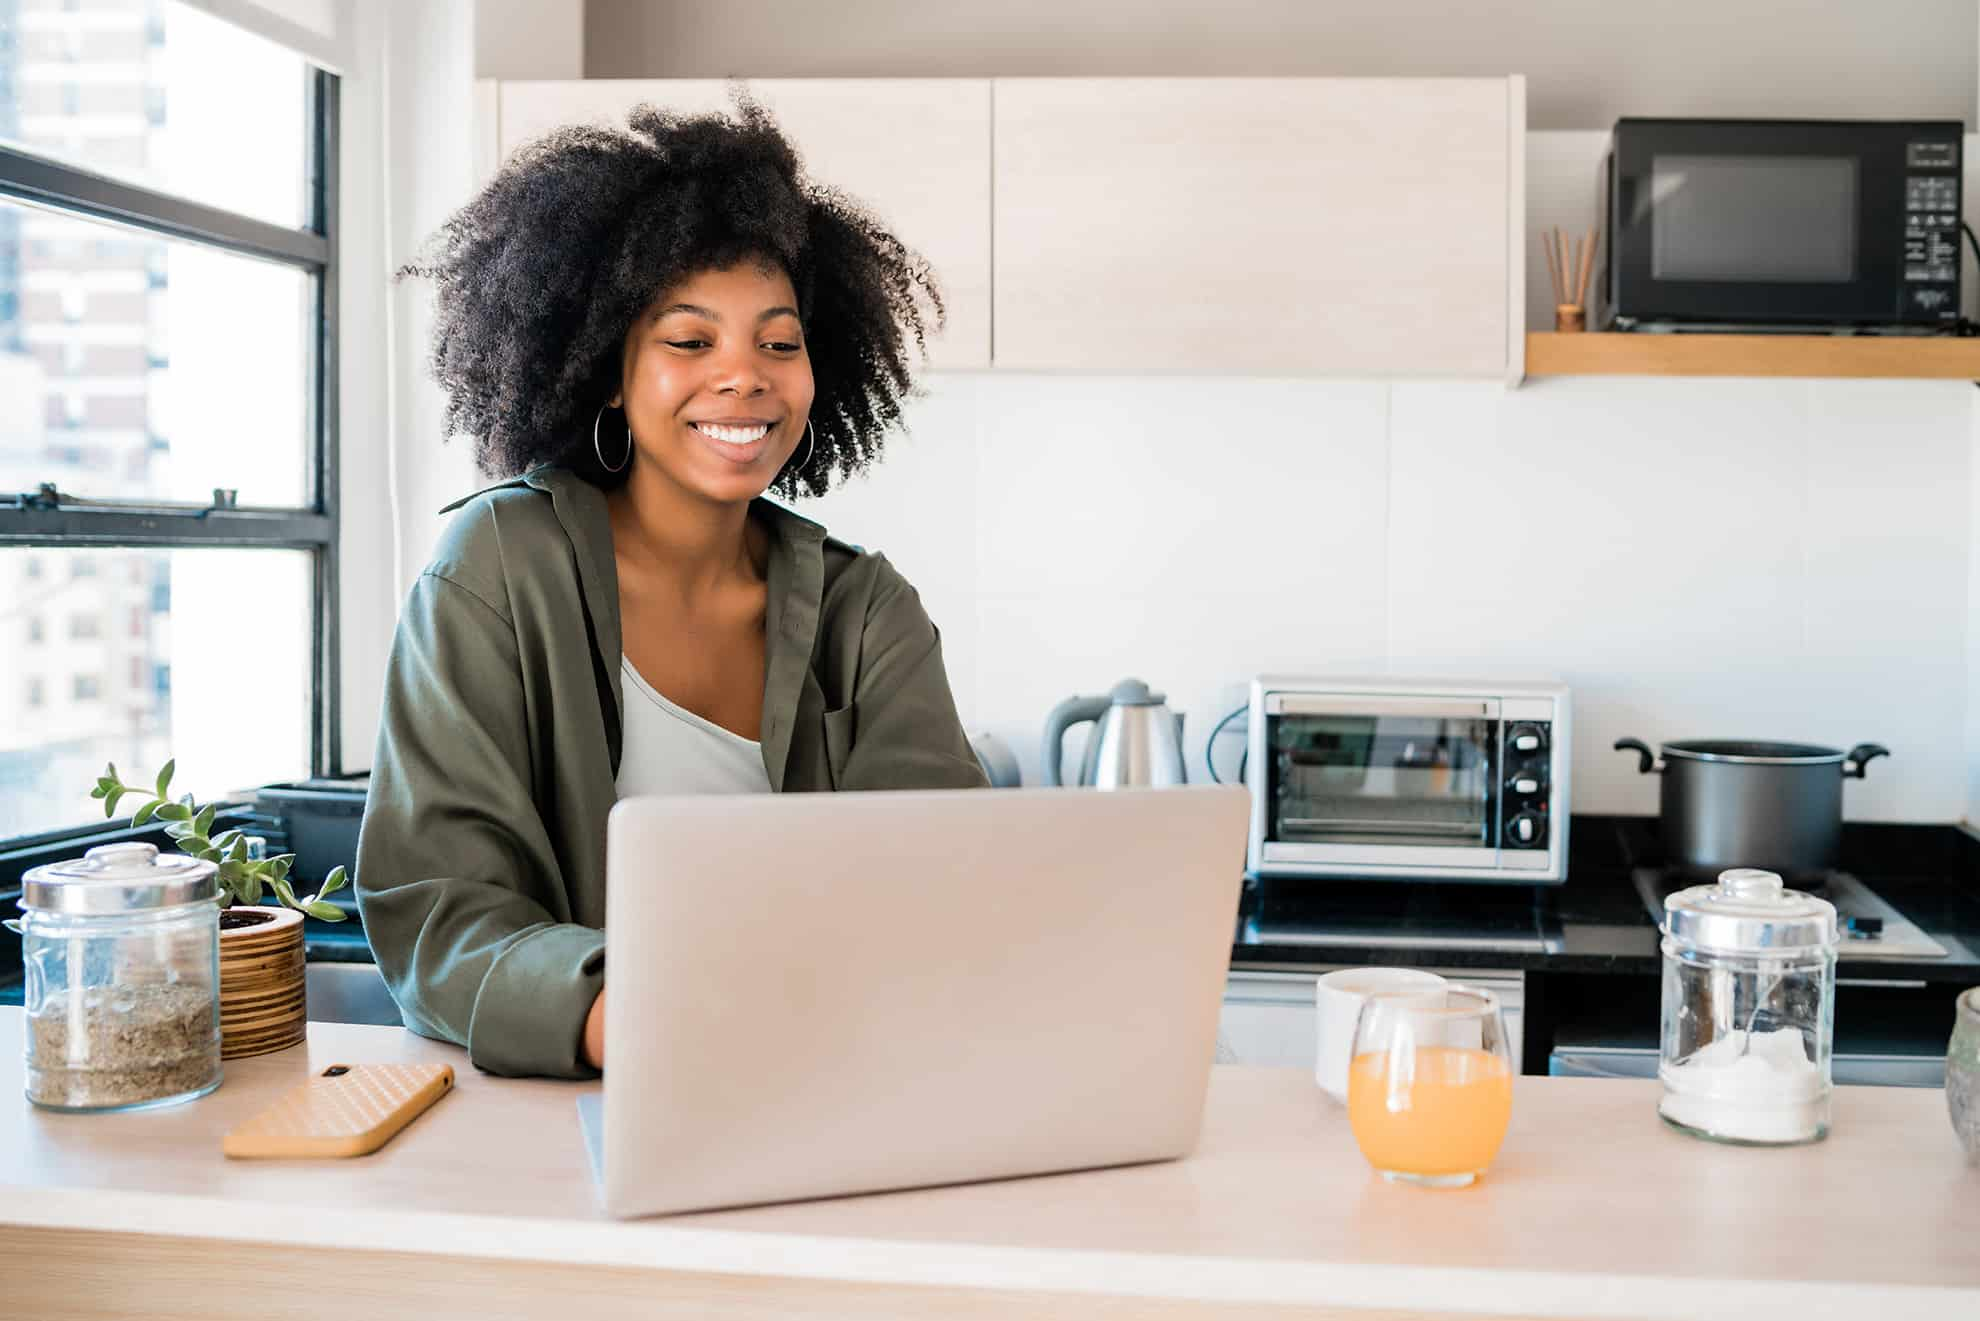 Young woman watching virtual home tour on laptop